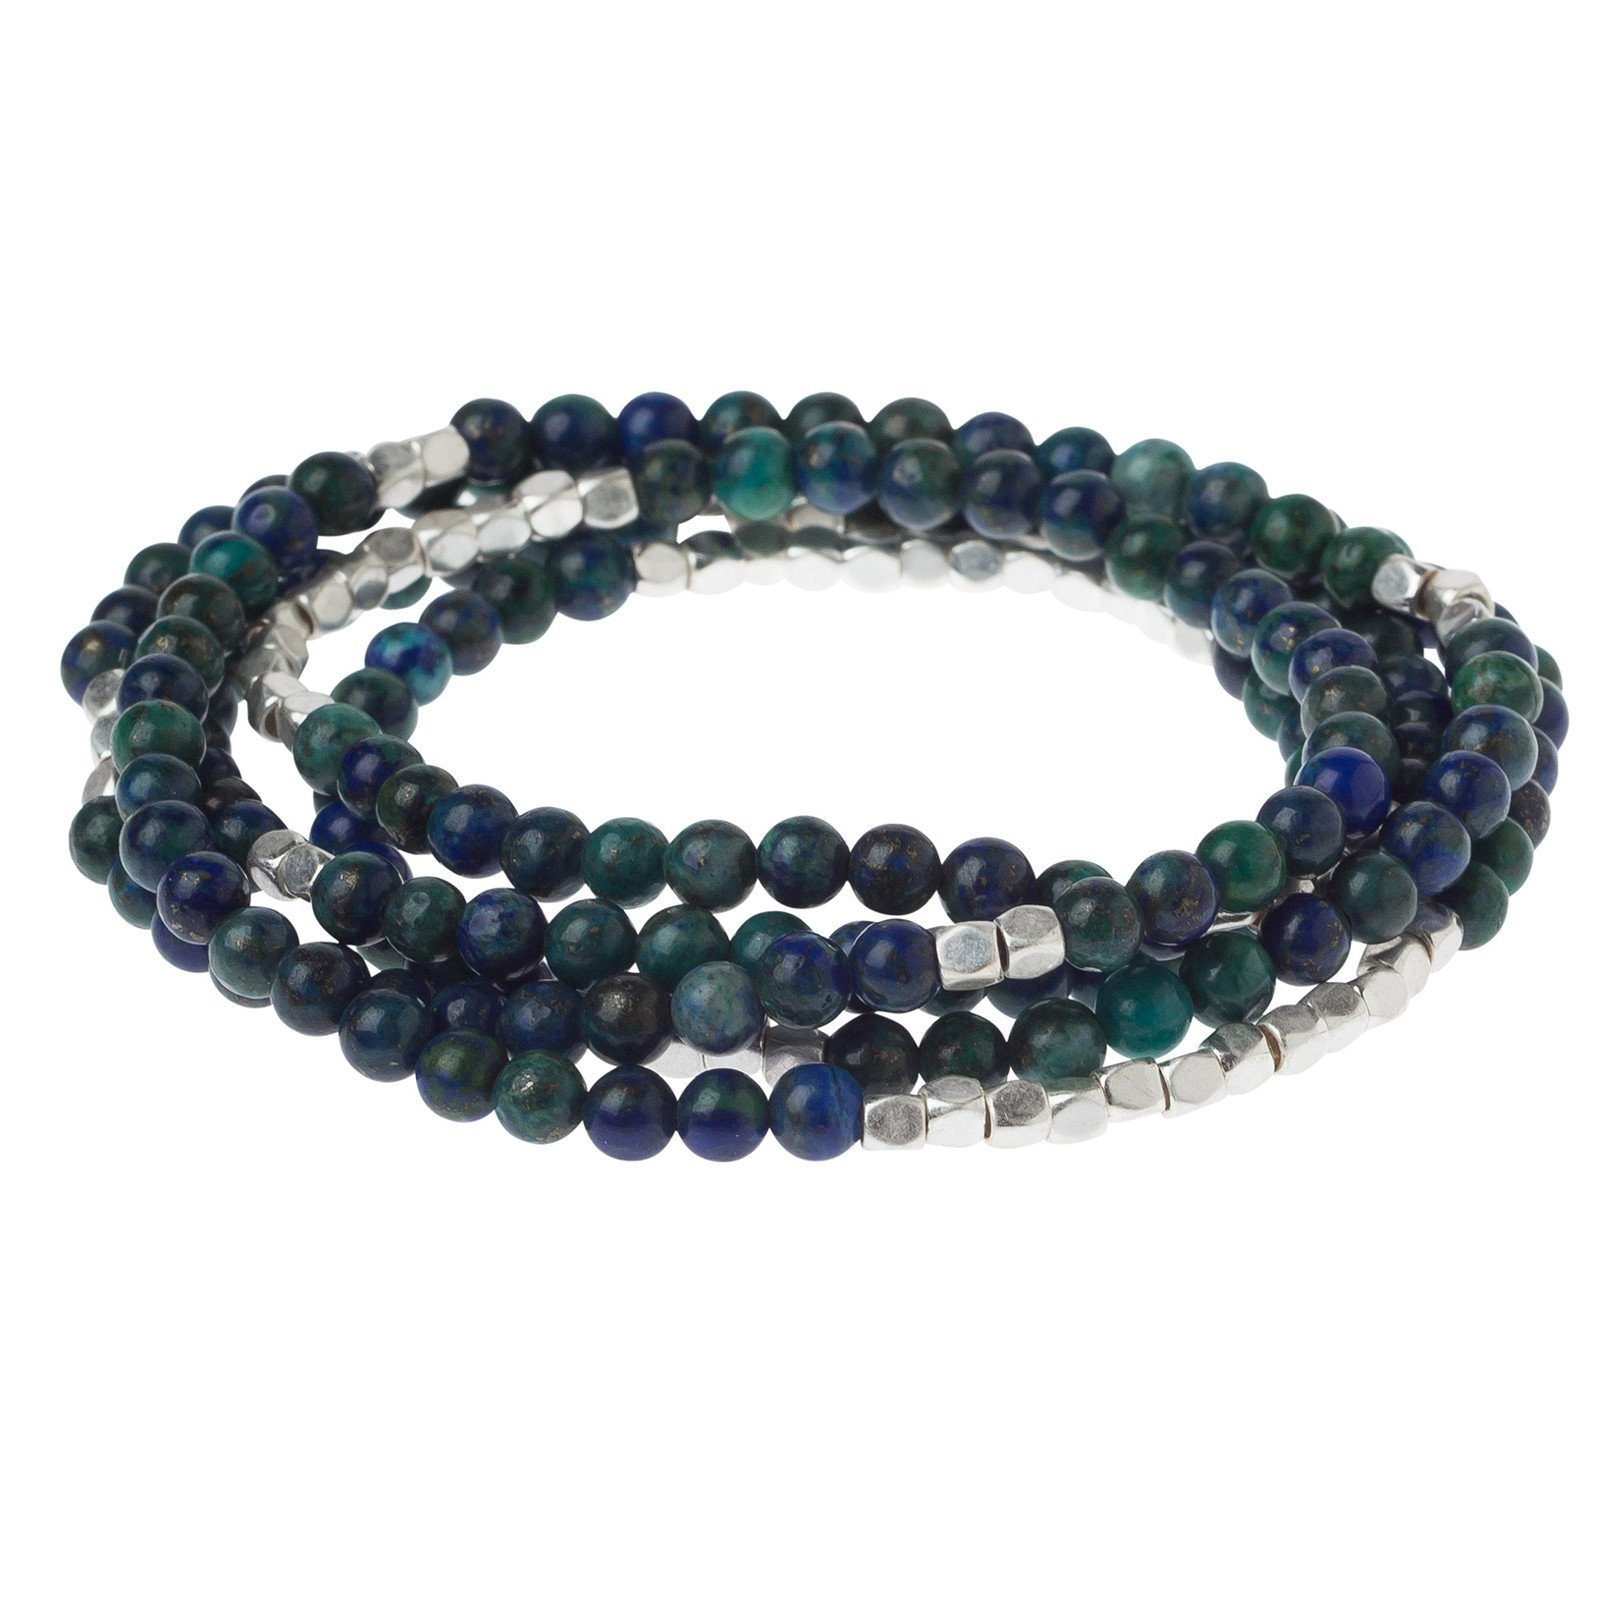 versatile bracelet cecelia wrap jewellery products snakeskin matte collections designs jasper bracelets gemstone jewelry